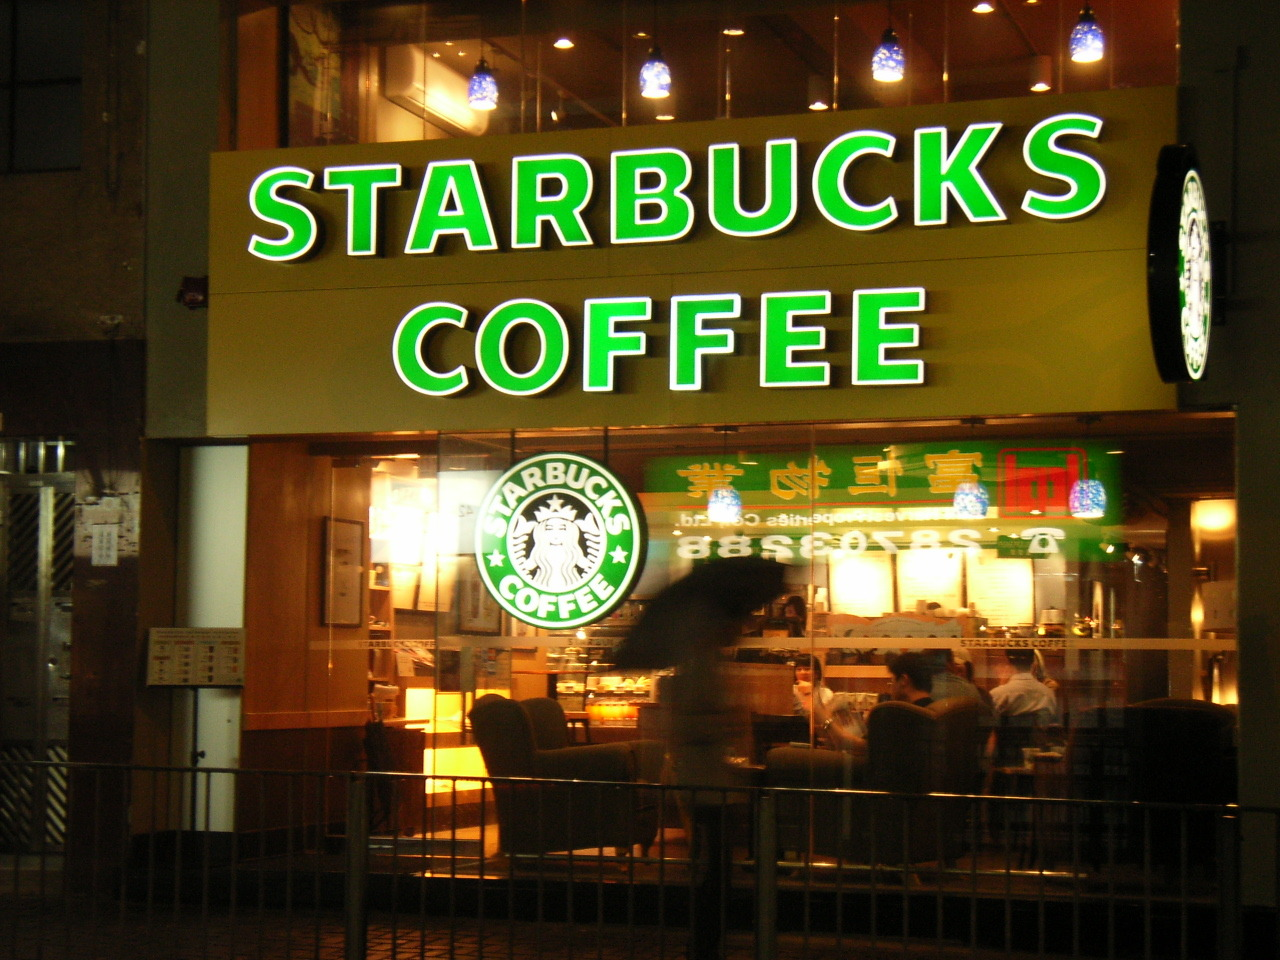 starbucks jobs jobler com job applications online for hourly starbucks application online